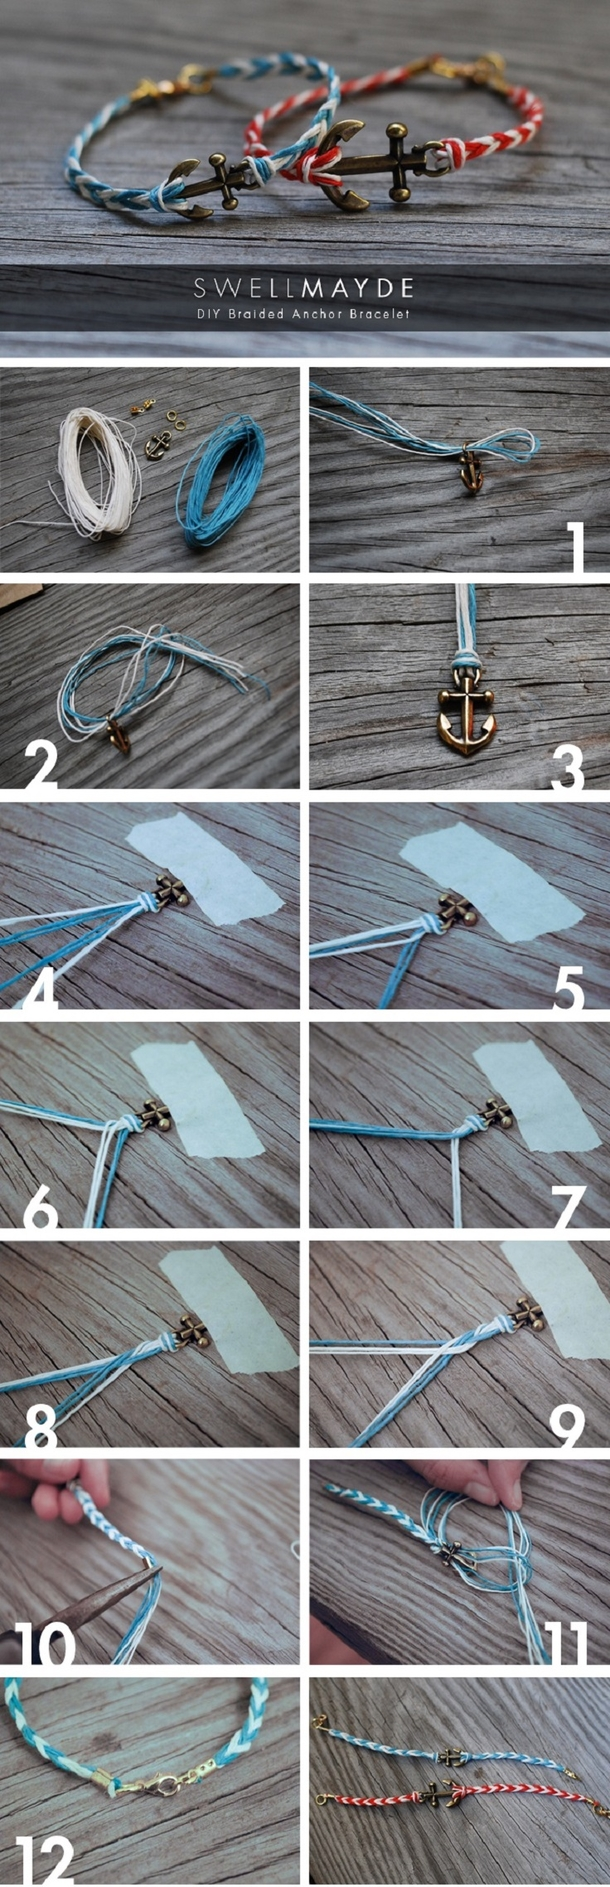 12 Super Simple Homemade Bracelet Tutorials7